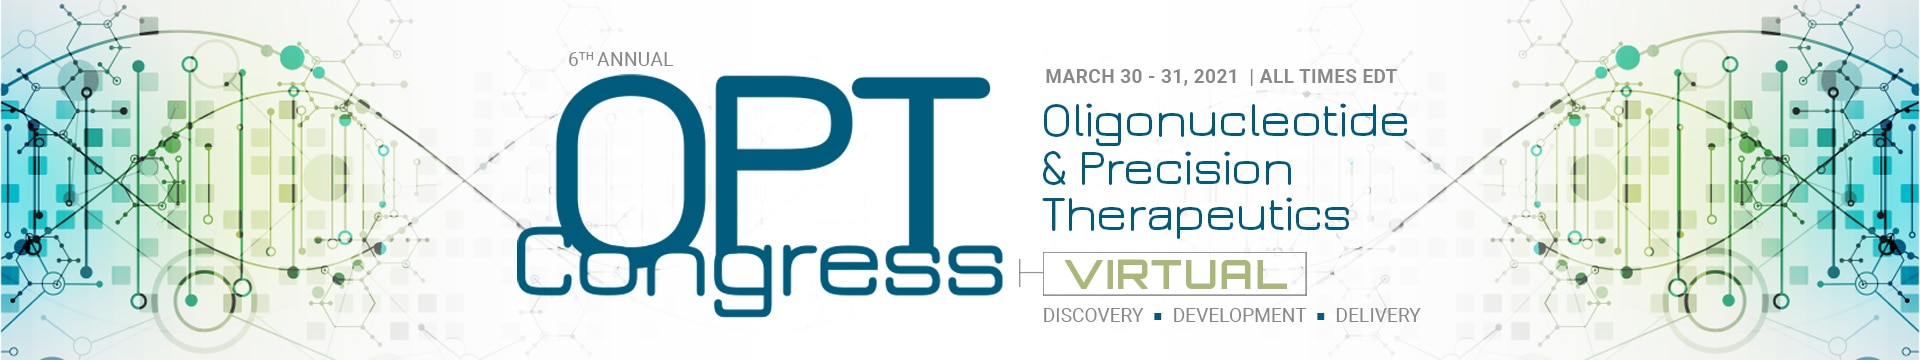 OPT Congress Header